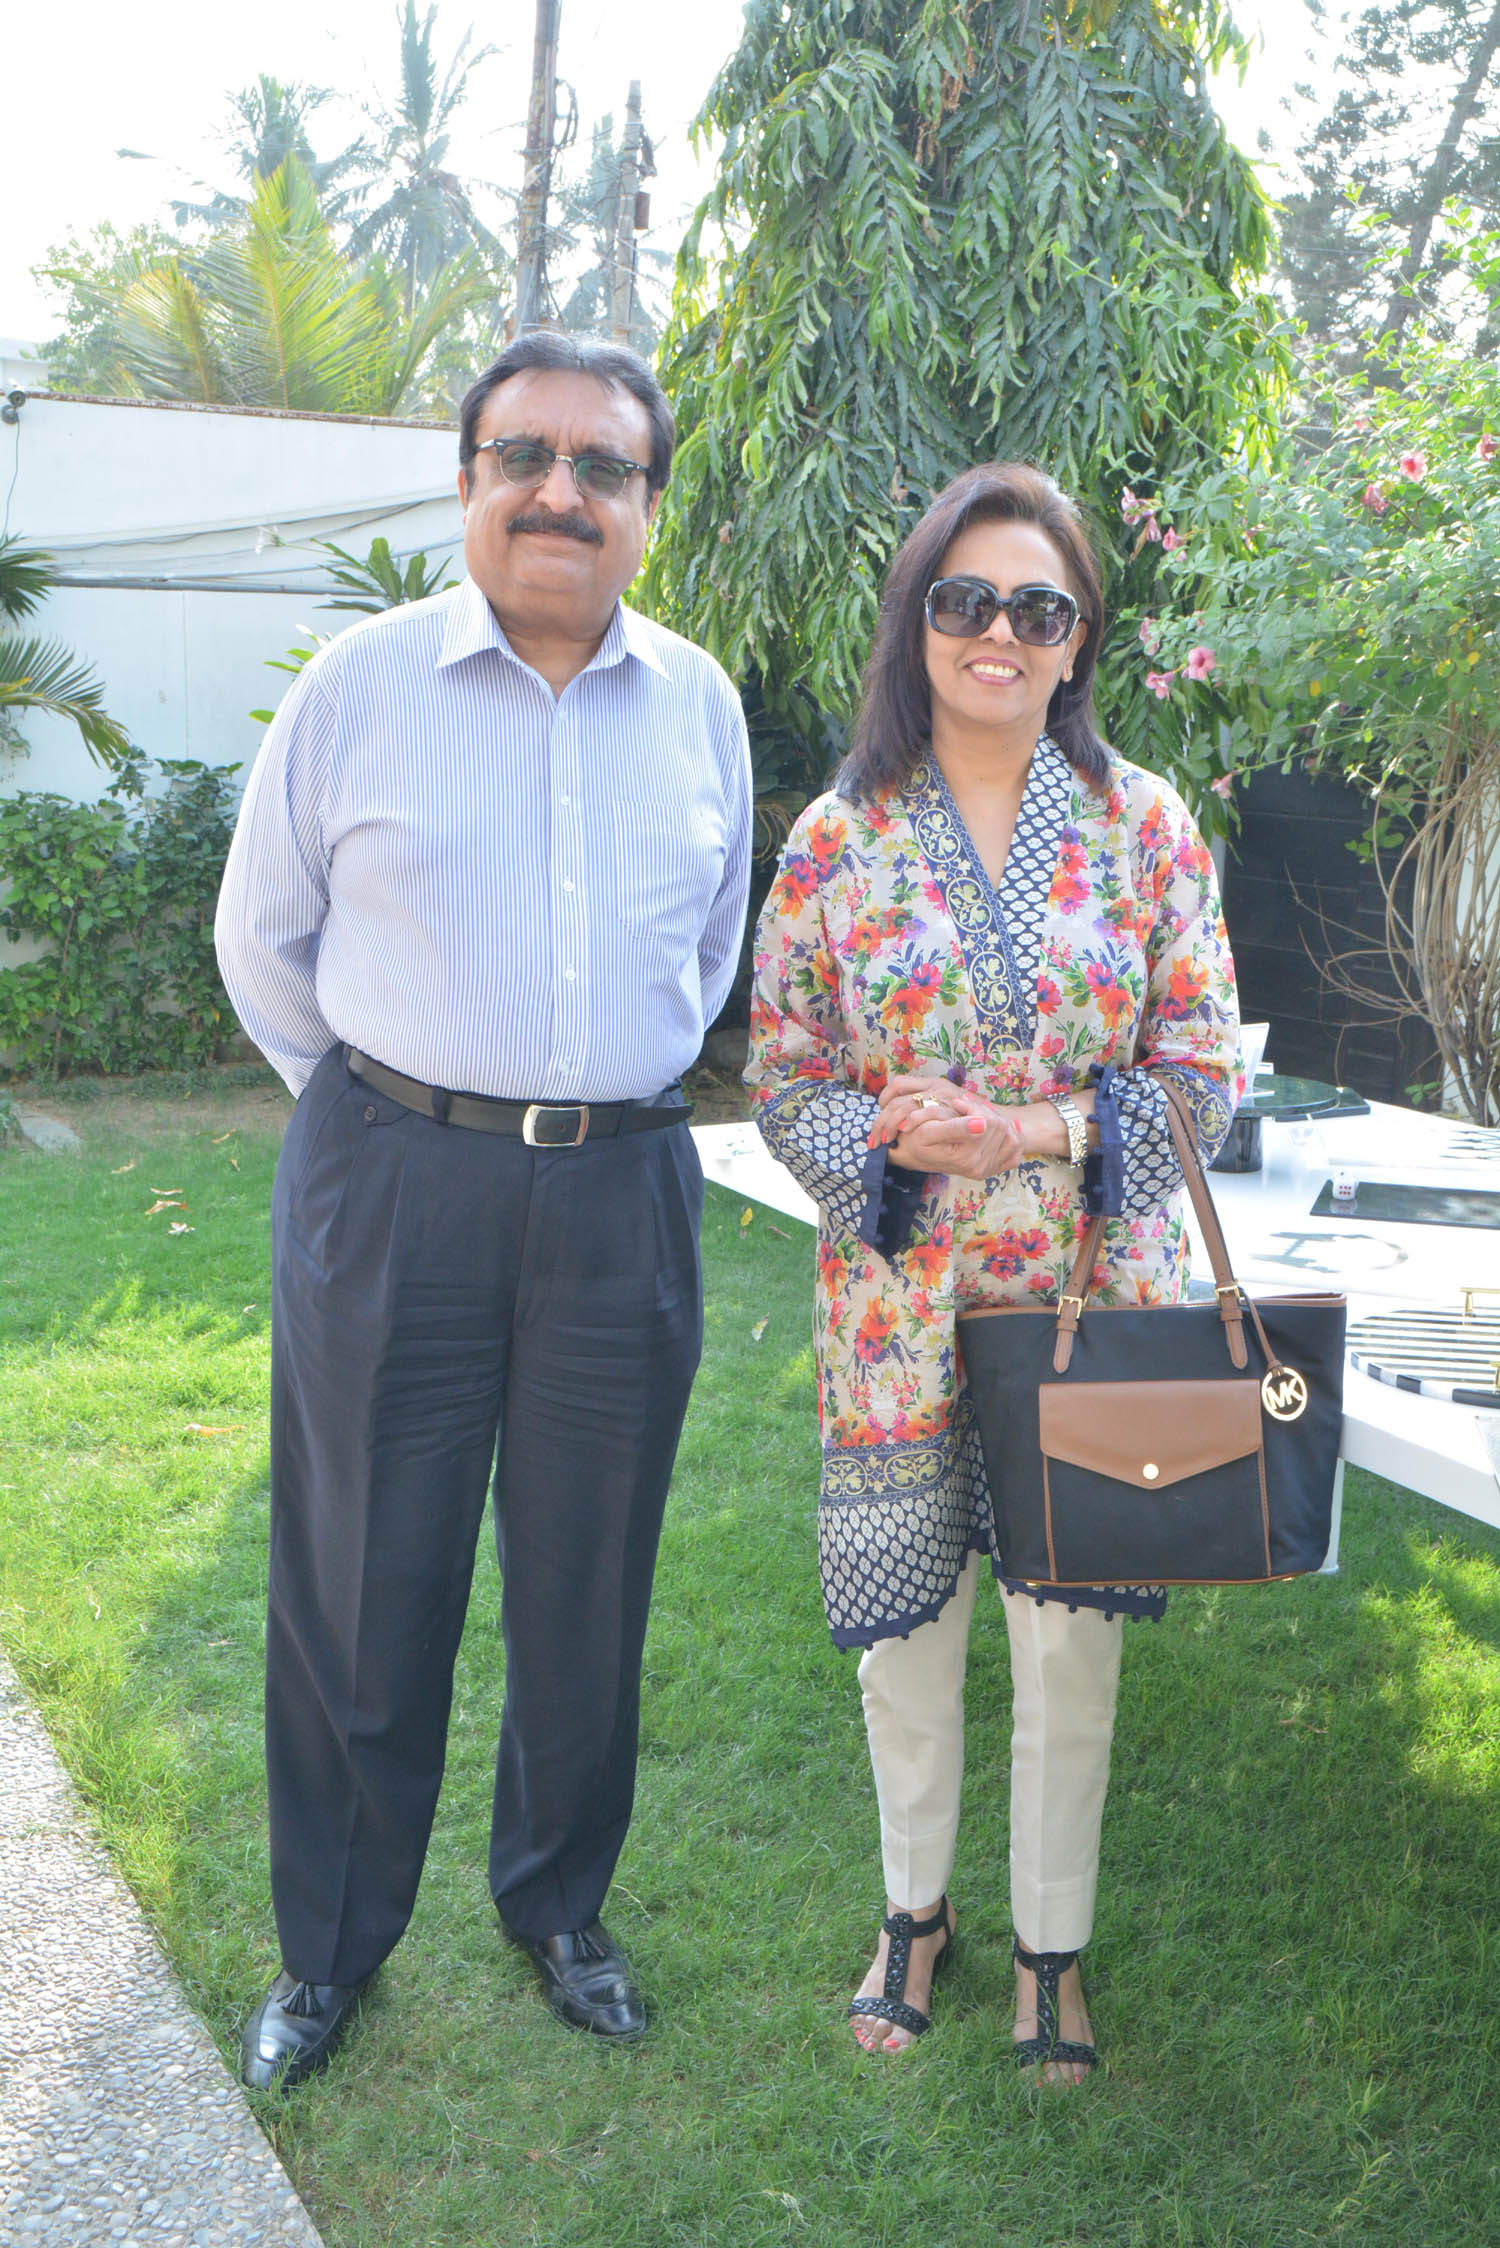 Mr. and Mrs. Fazal Mehmood